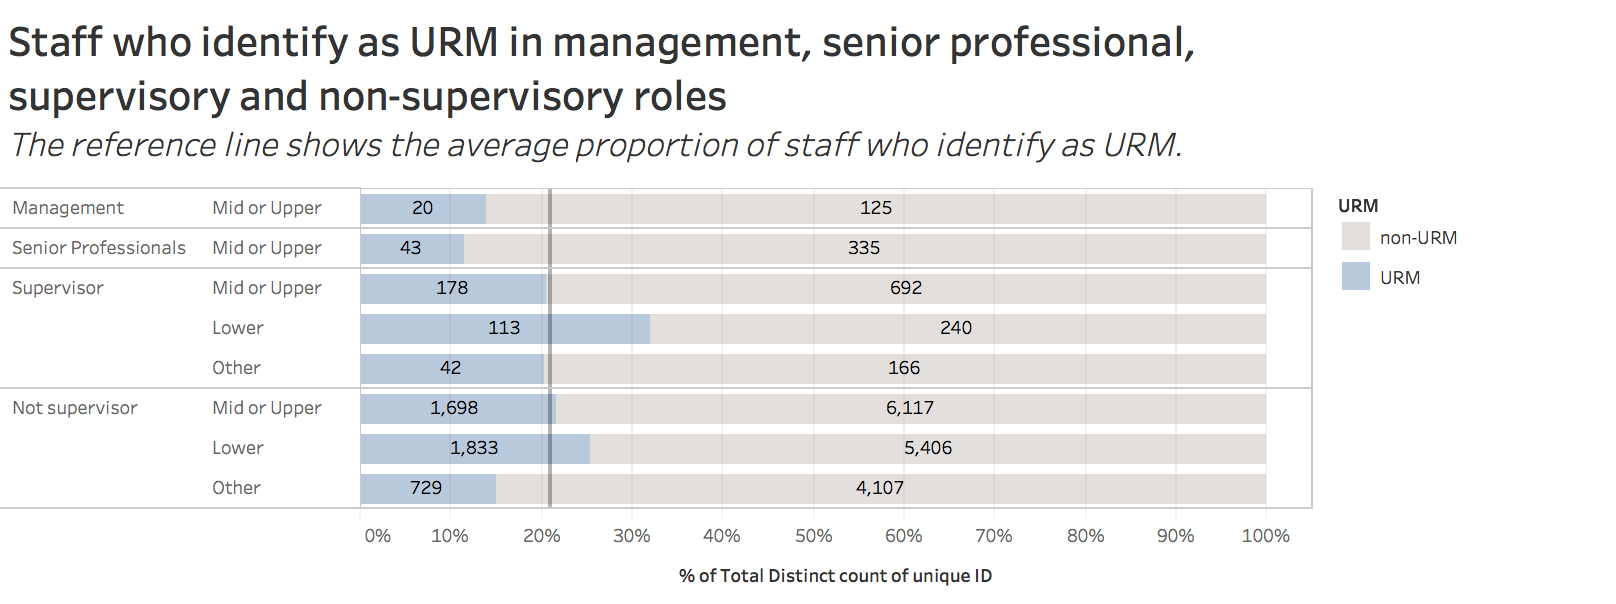 staff who identify as URM in management, senior professional, supervisory, and non-supervisory roles